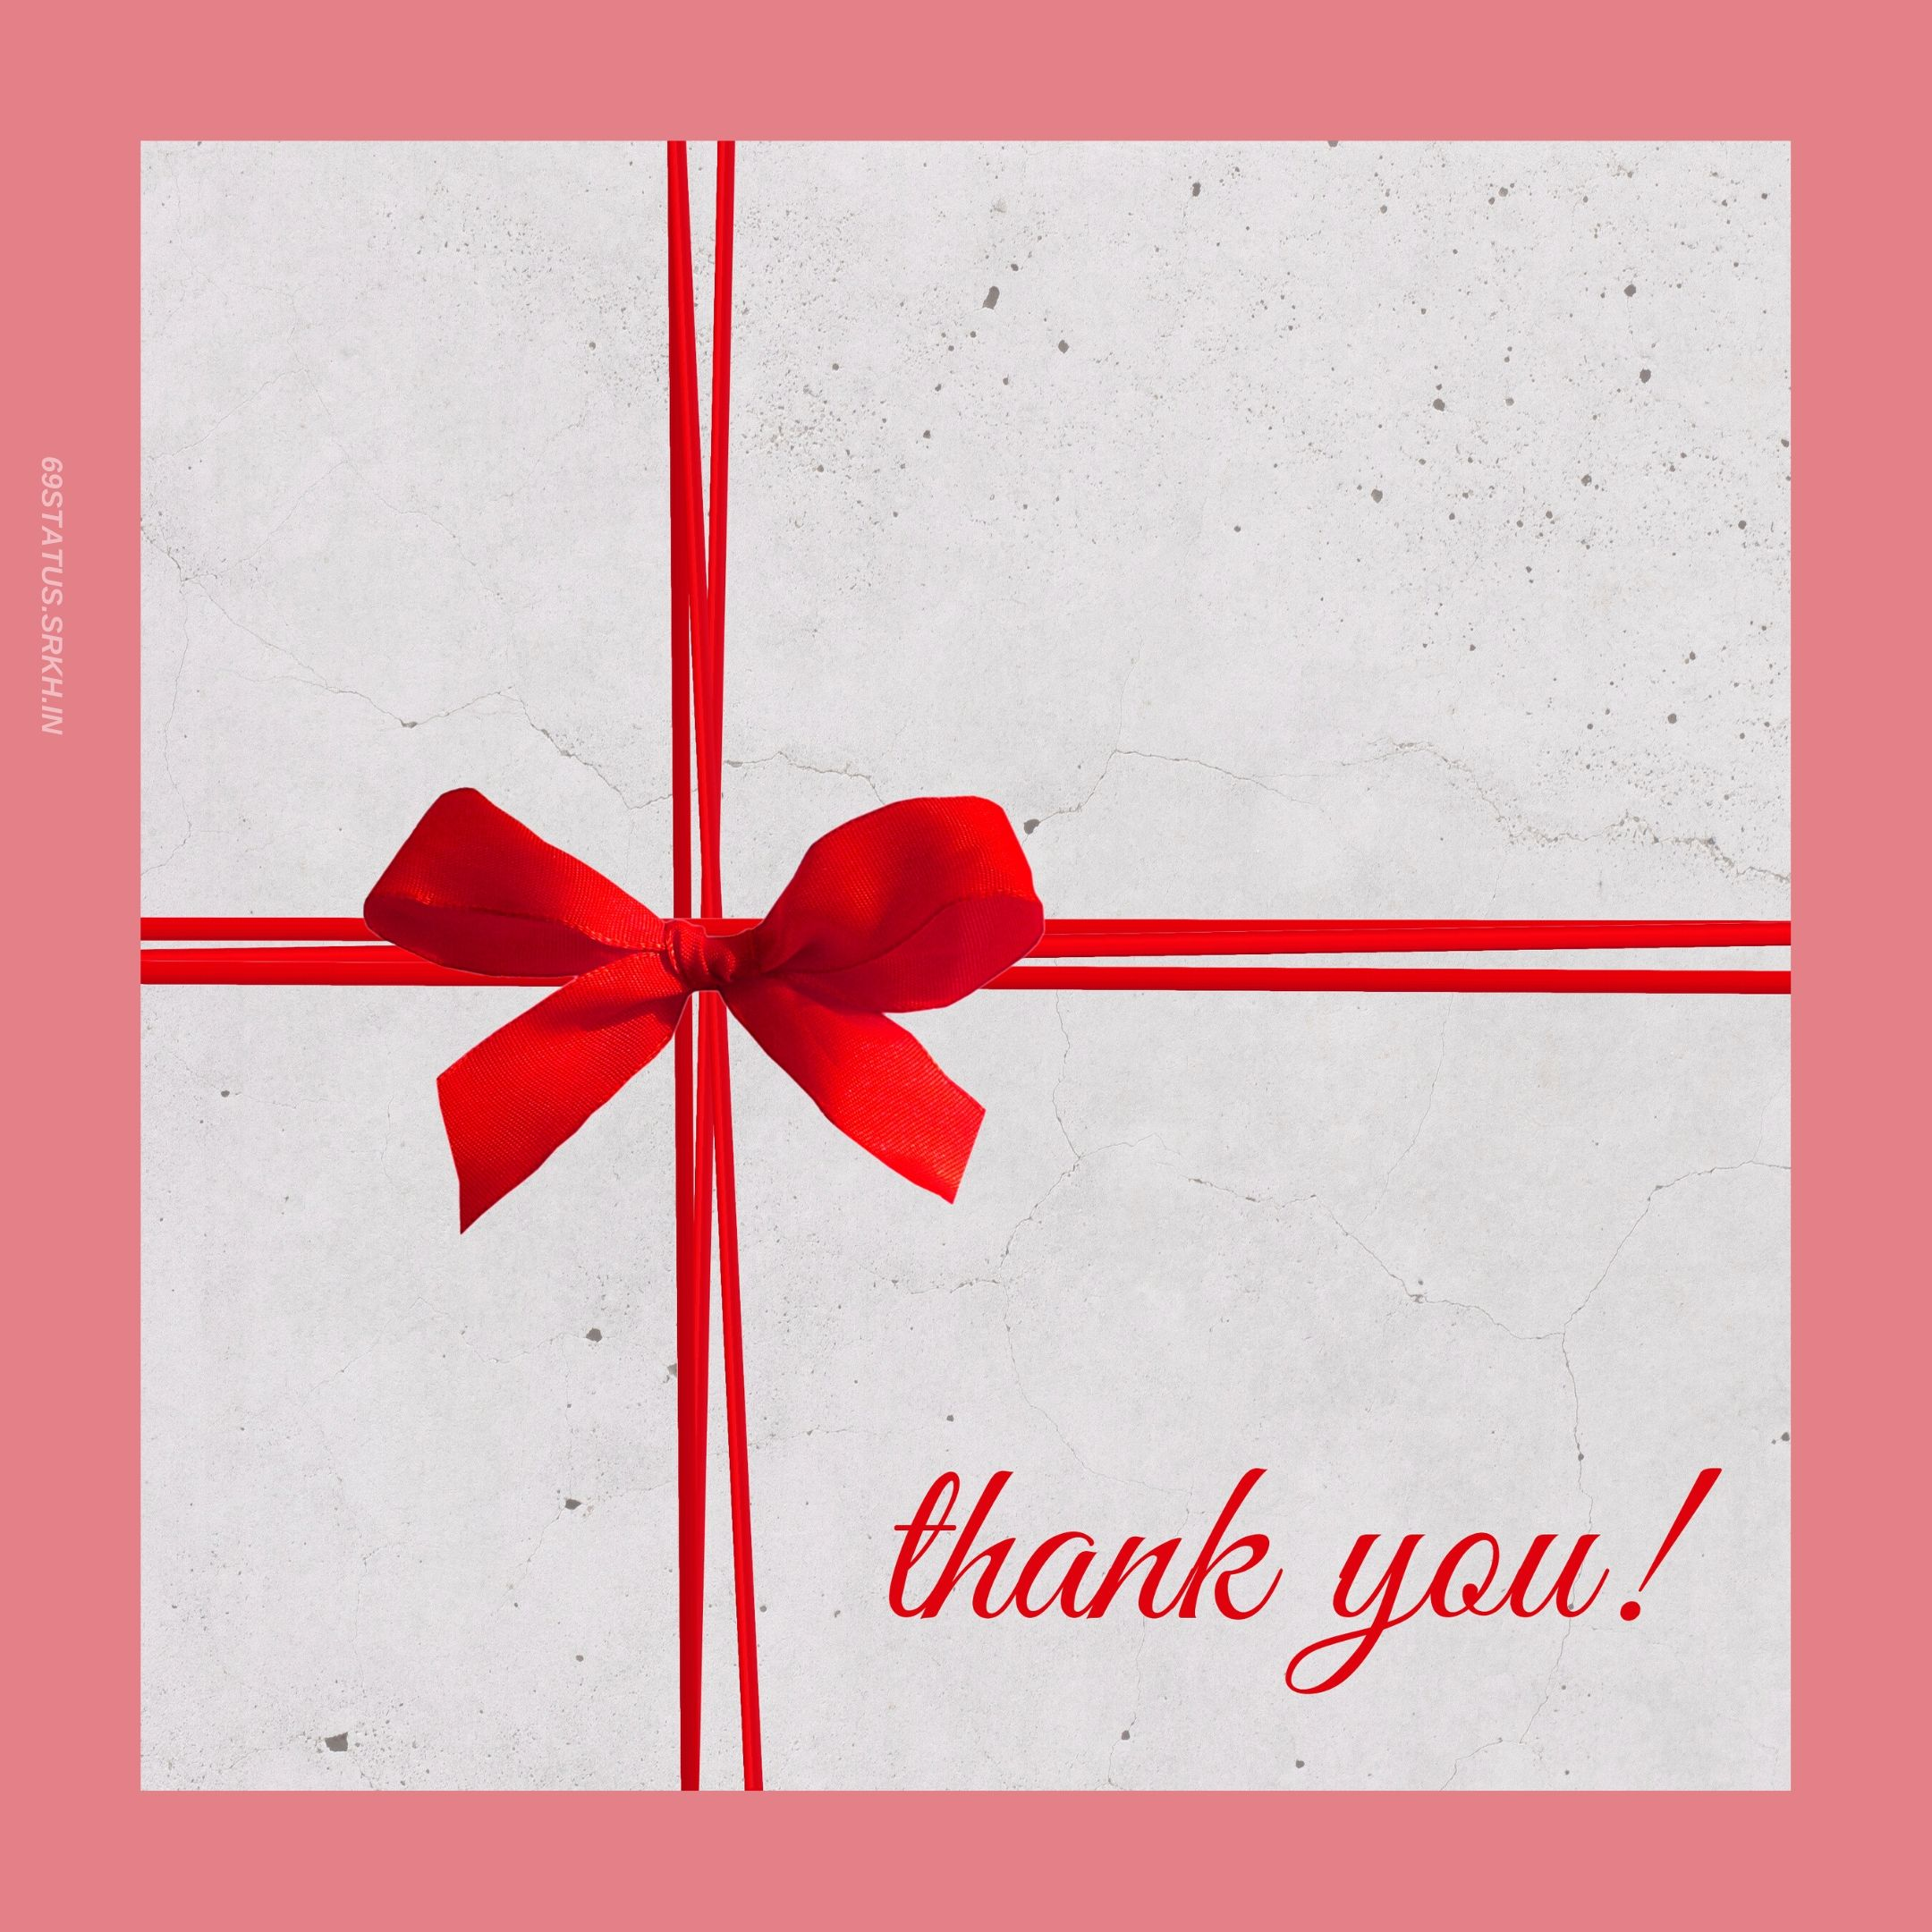 Professional Thank You Images in FHD full HD free download.